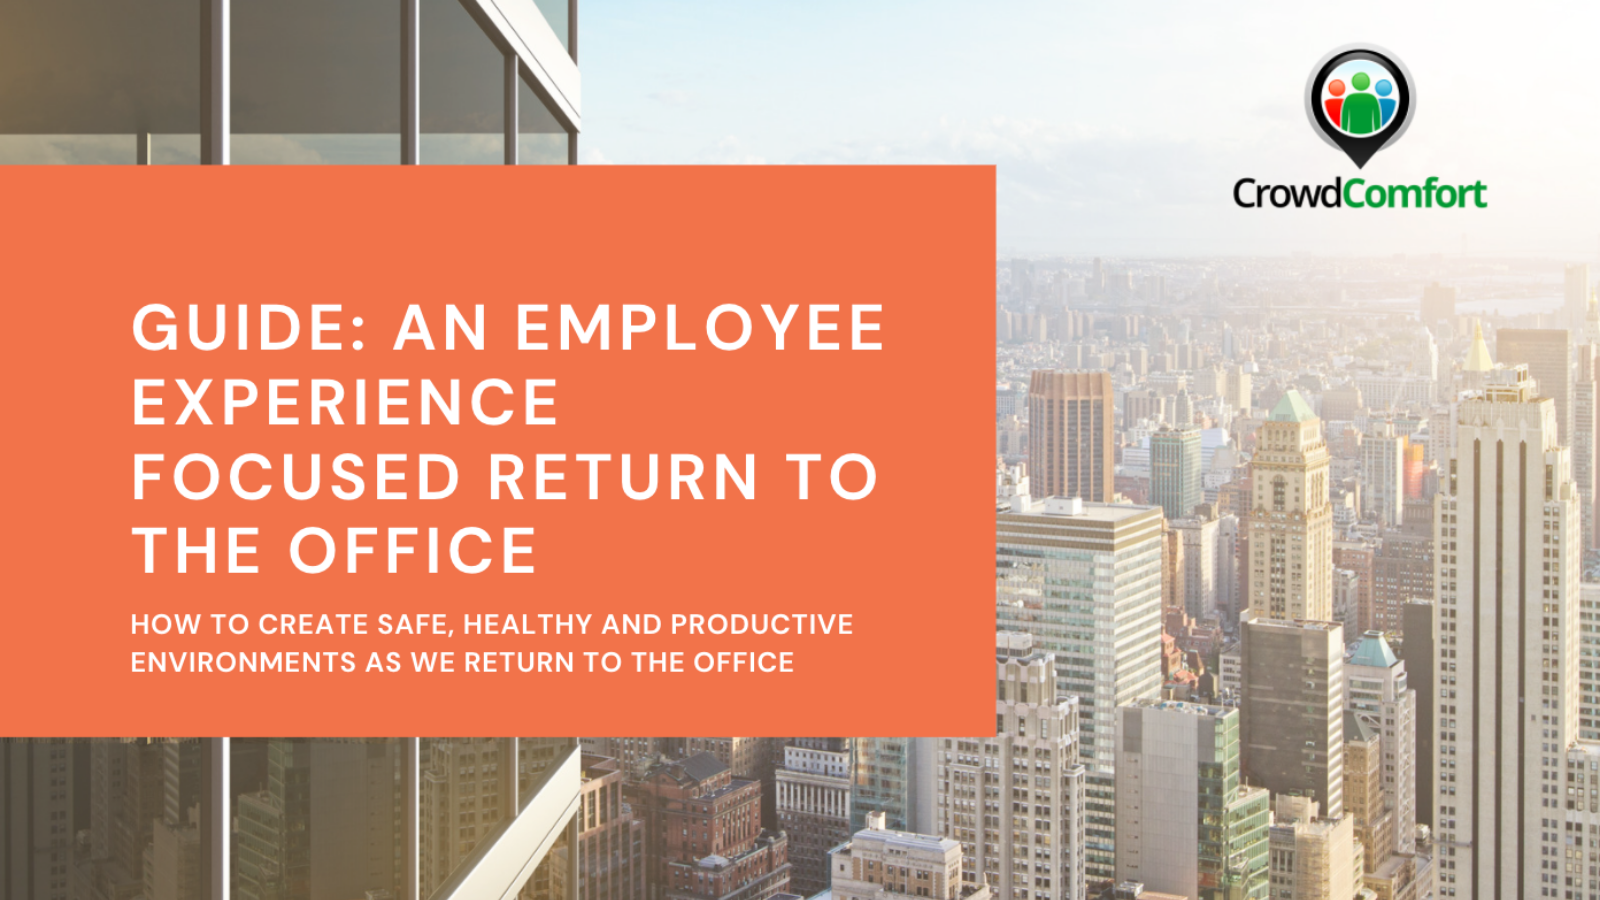 Guide: An Employee Experience Focused Return to The Office